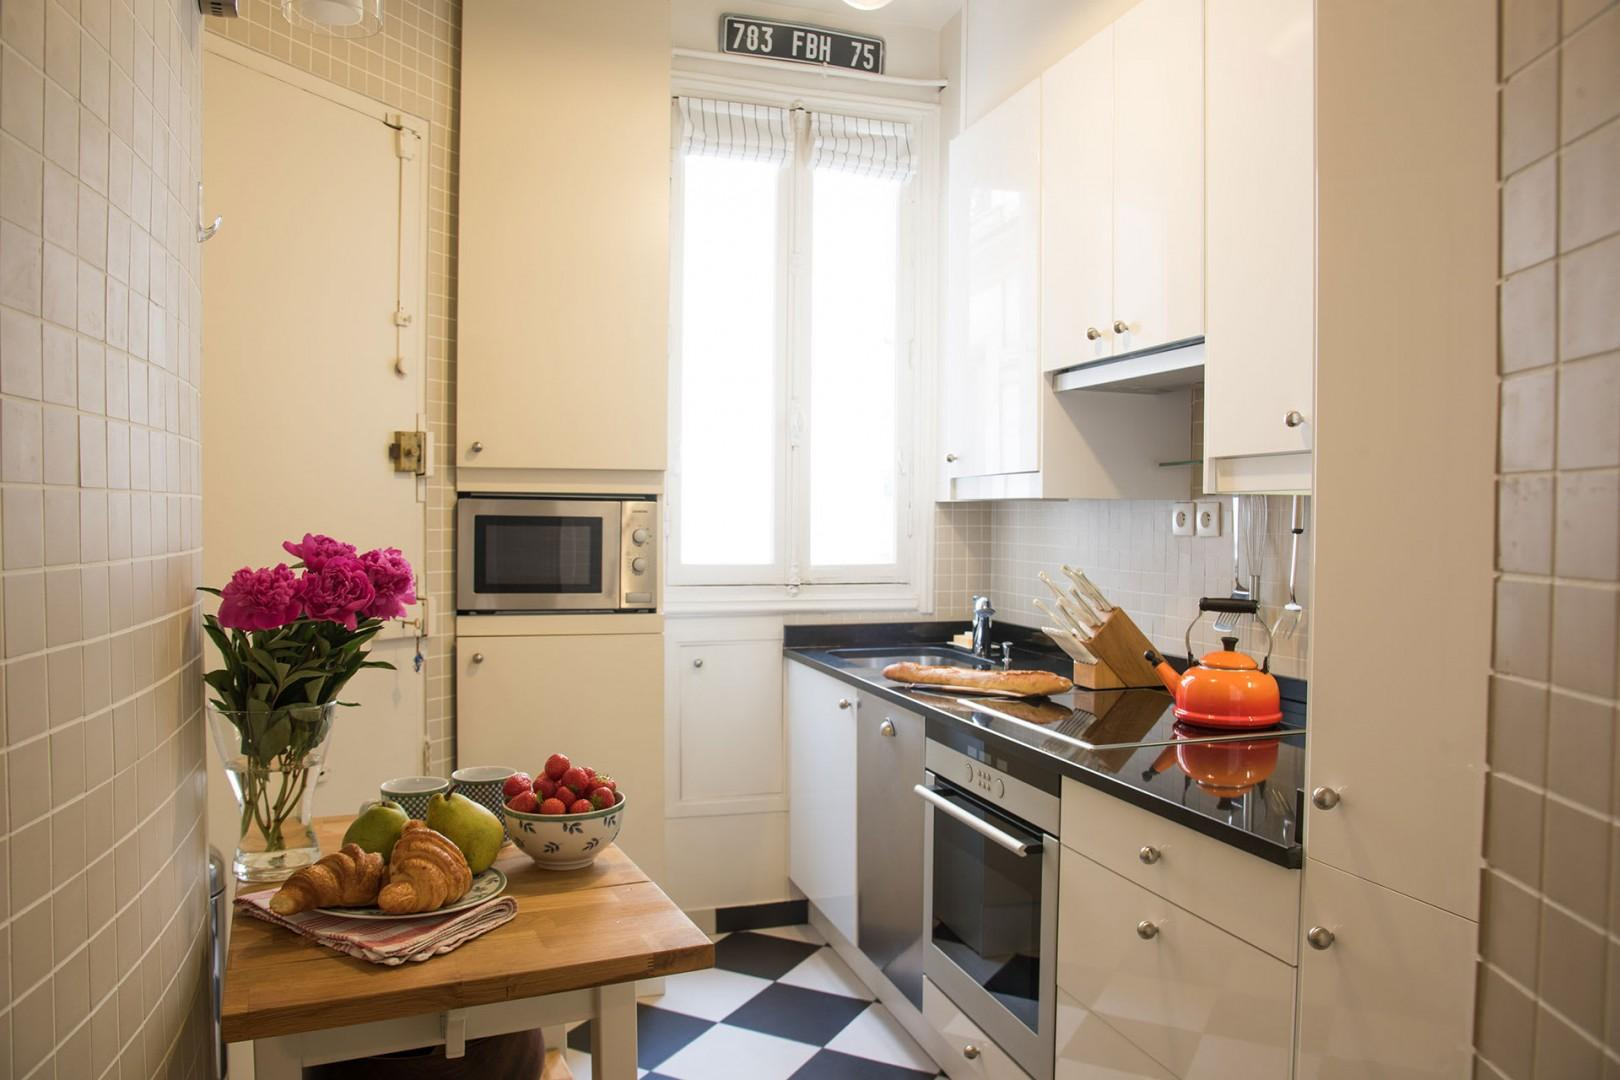 The fully equipped kitchen comes with modern appliances.